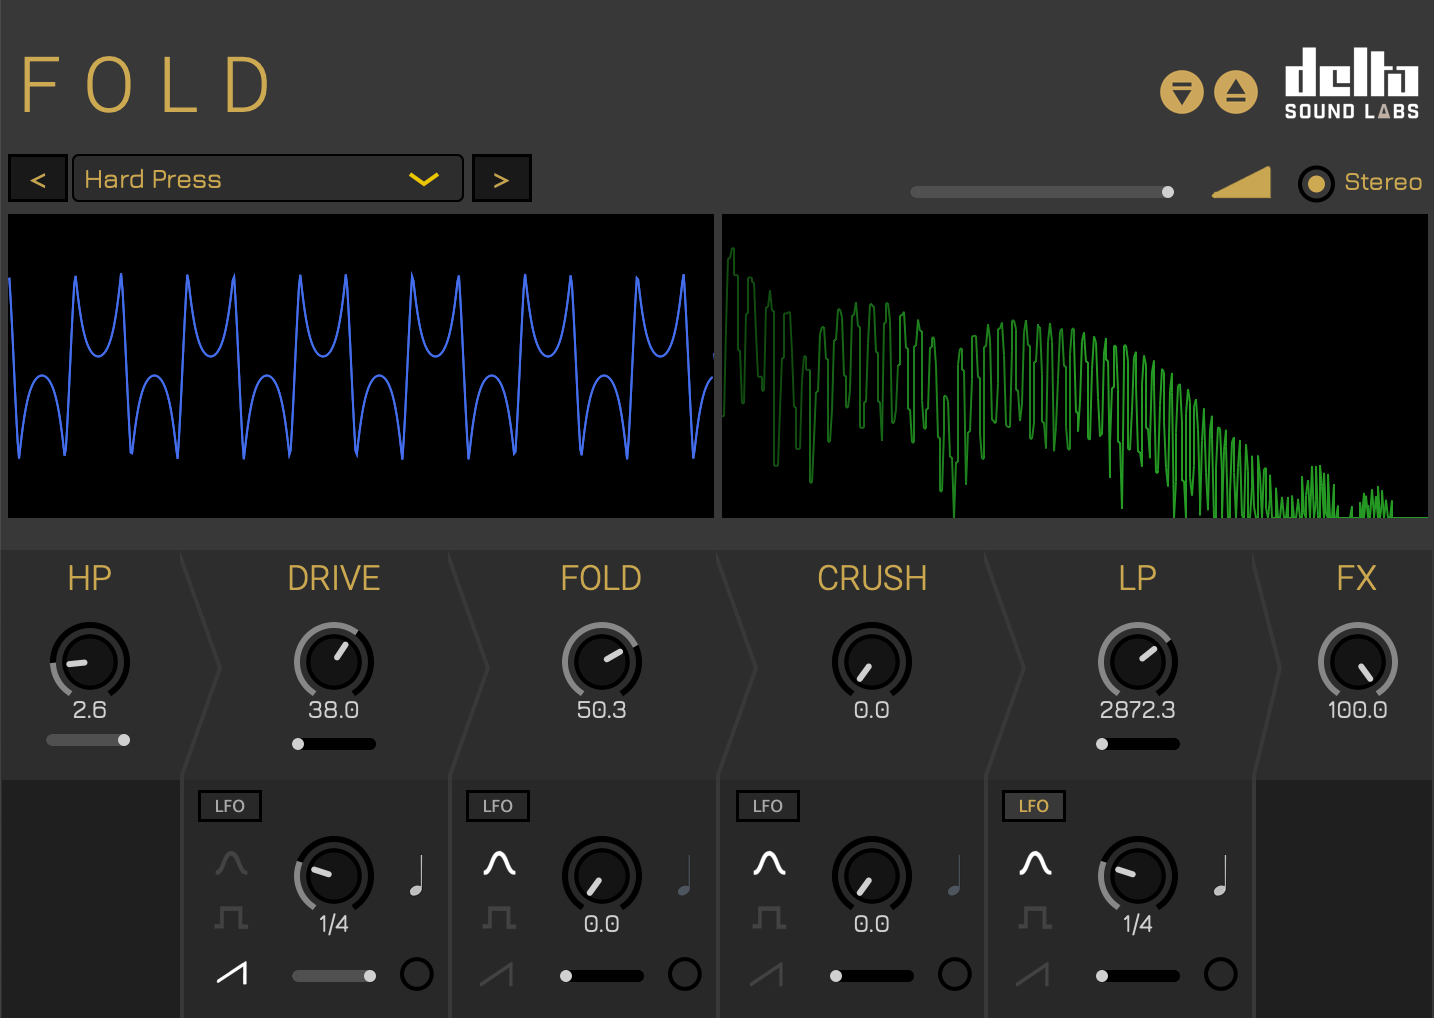 Fold: Distortion synthesis plugin for harmonically rich overtones